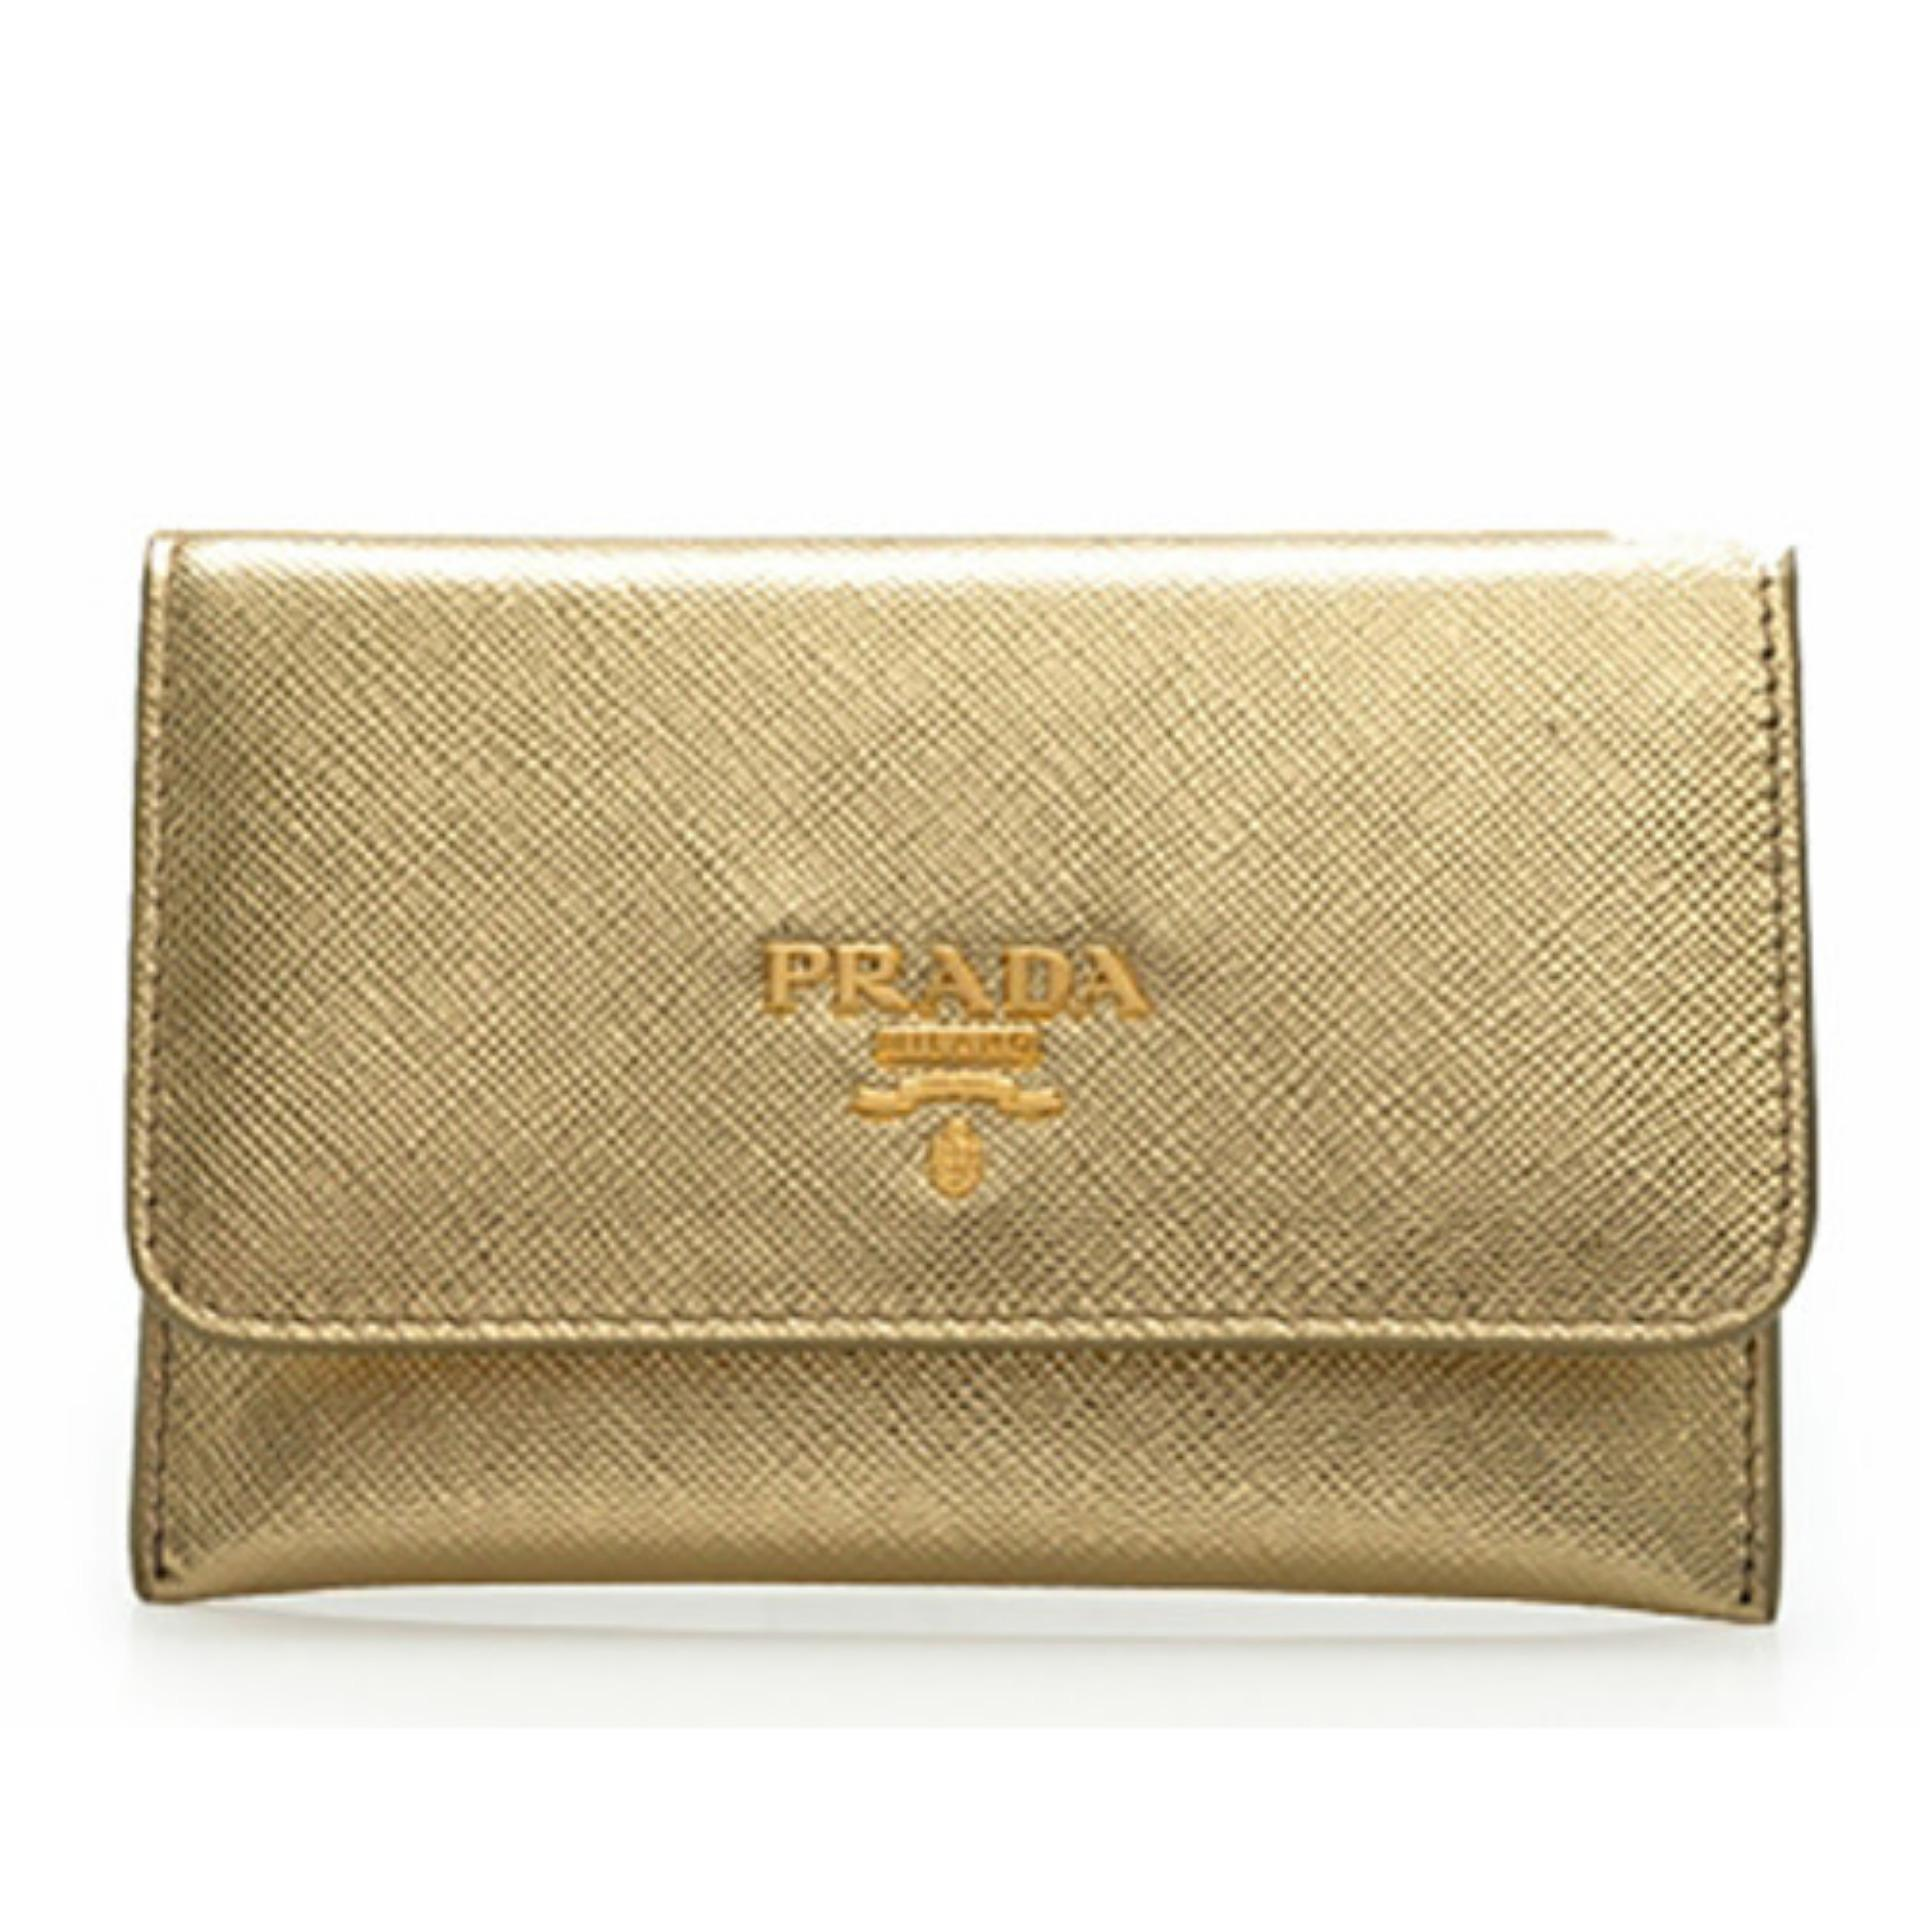 bc9a078a48c733 official store prada saffiano metal chain wallet a9cd5 28bfa